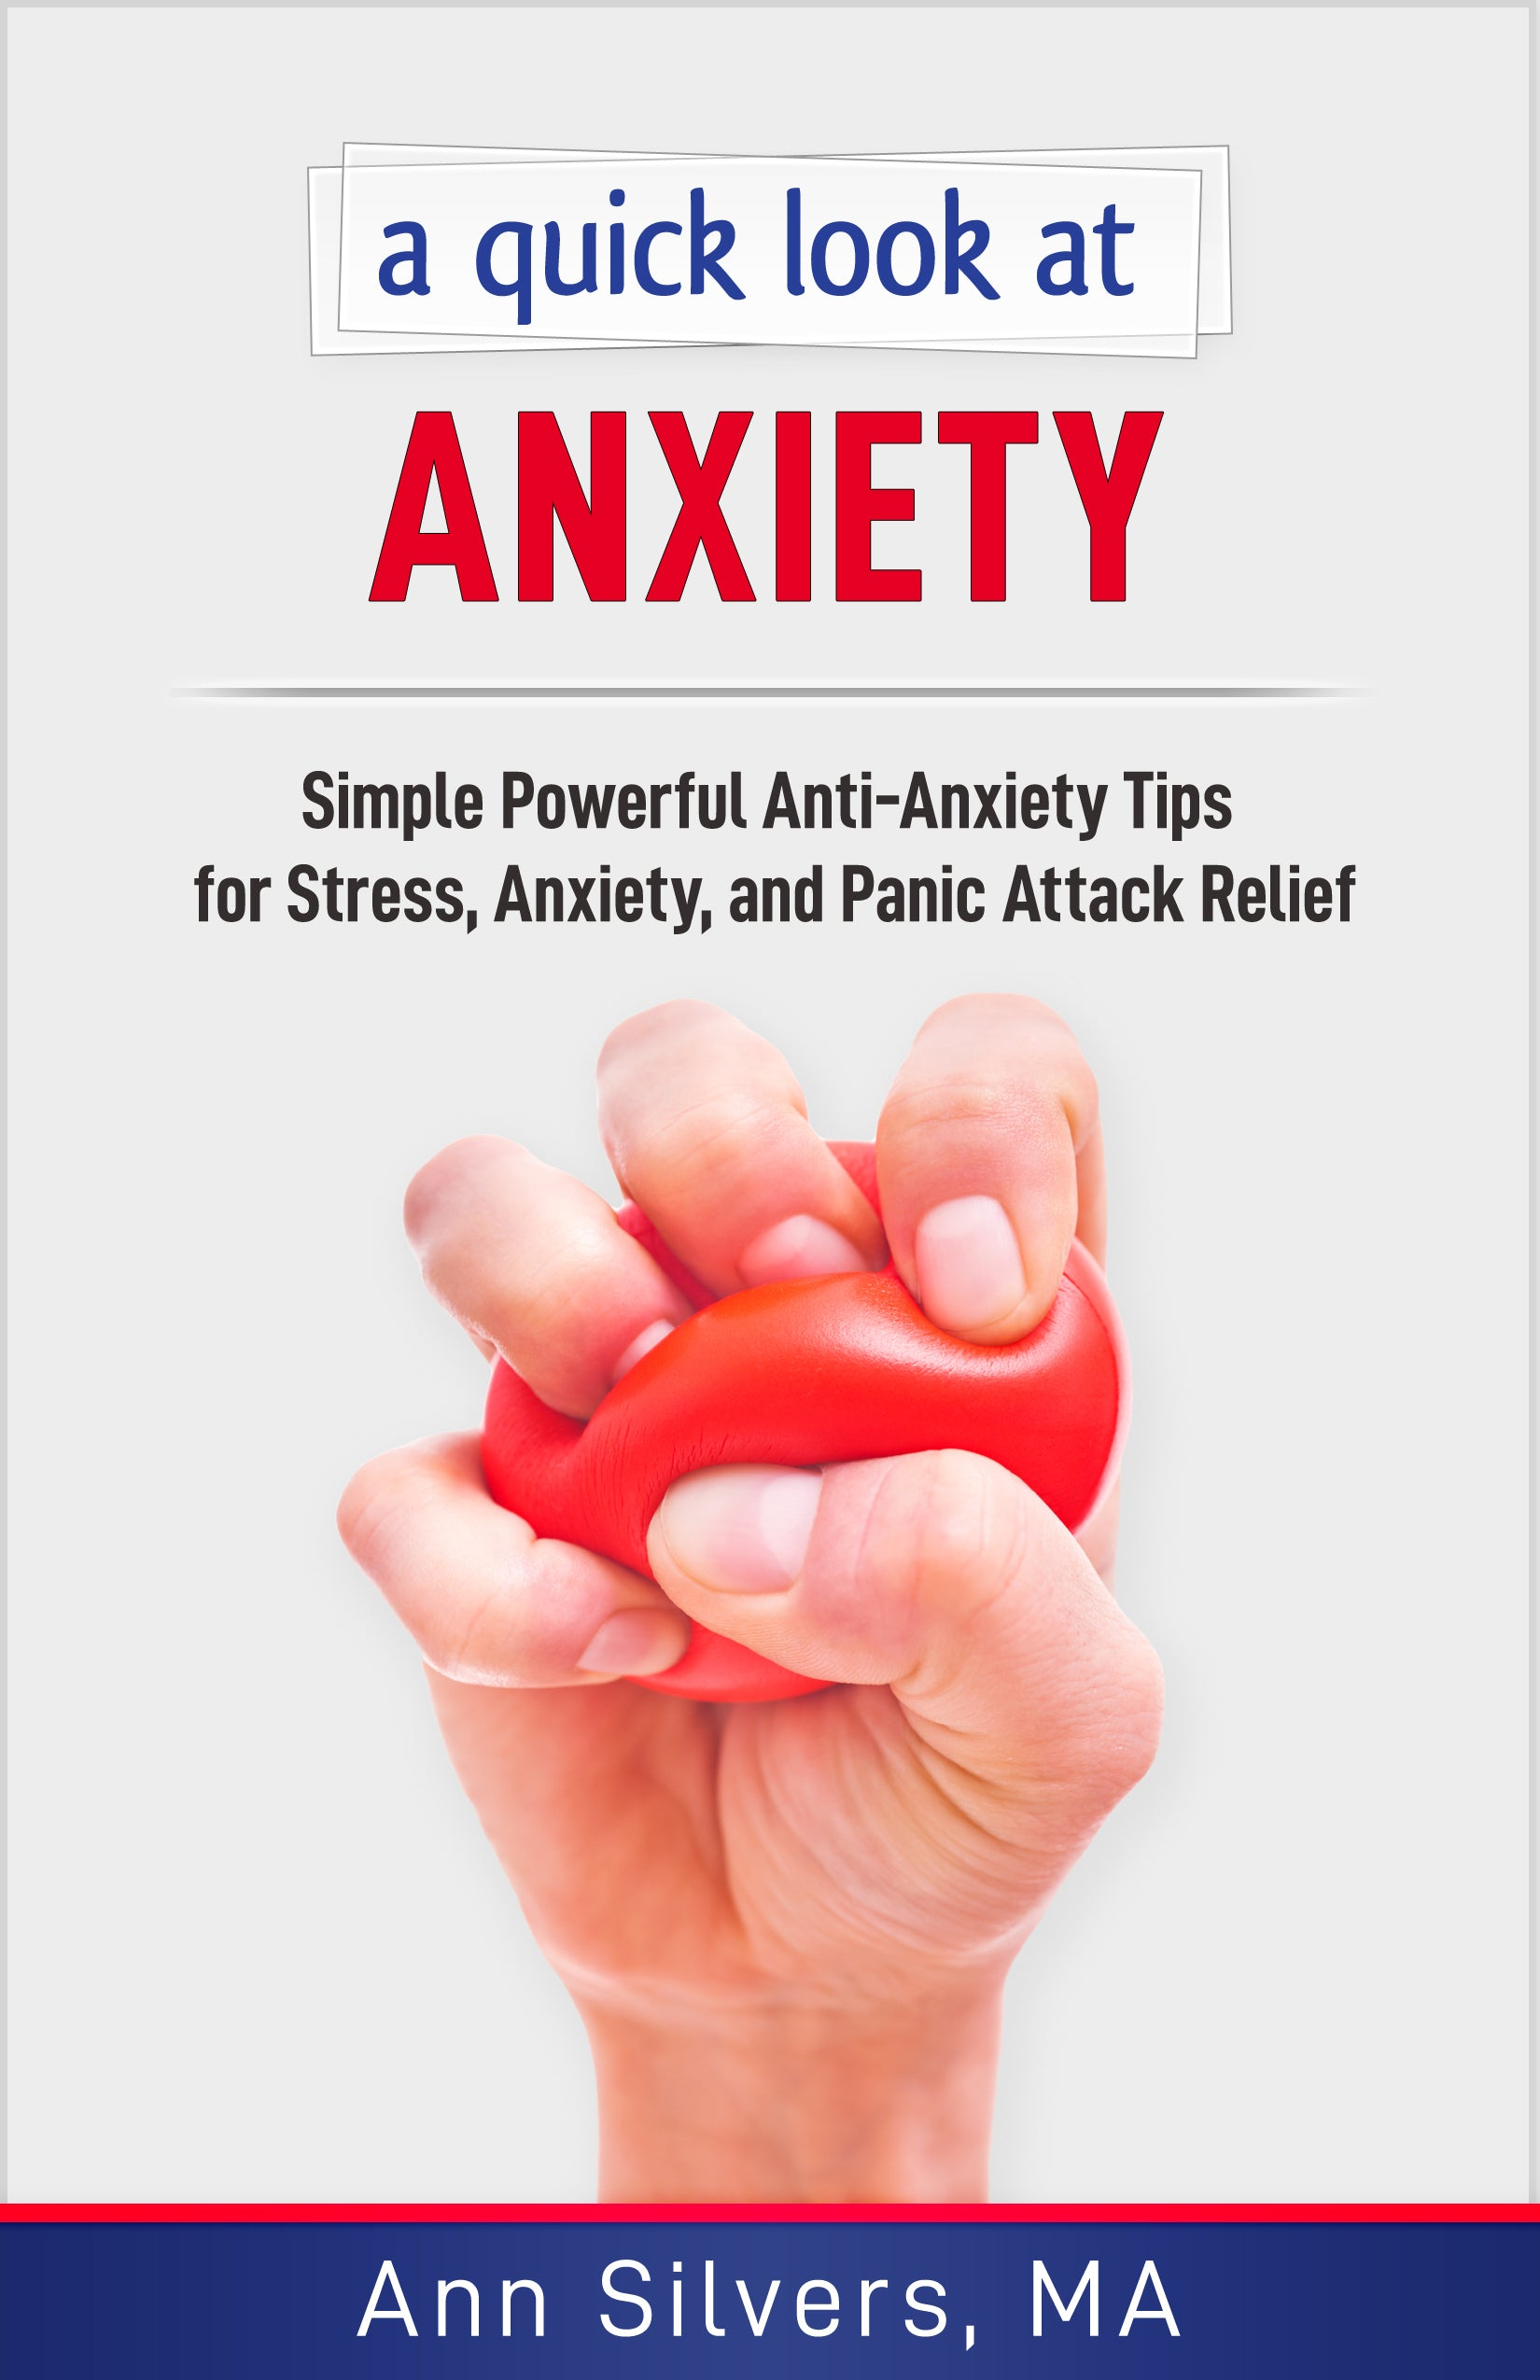 A quick look at Anxiety: Simple Powerful Anti-Anxiety Tips for Stress, Anxiety, and Panic Attack Relief